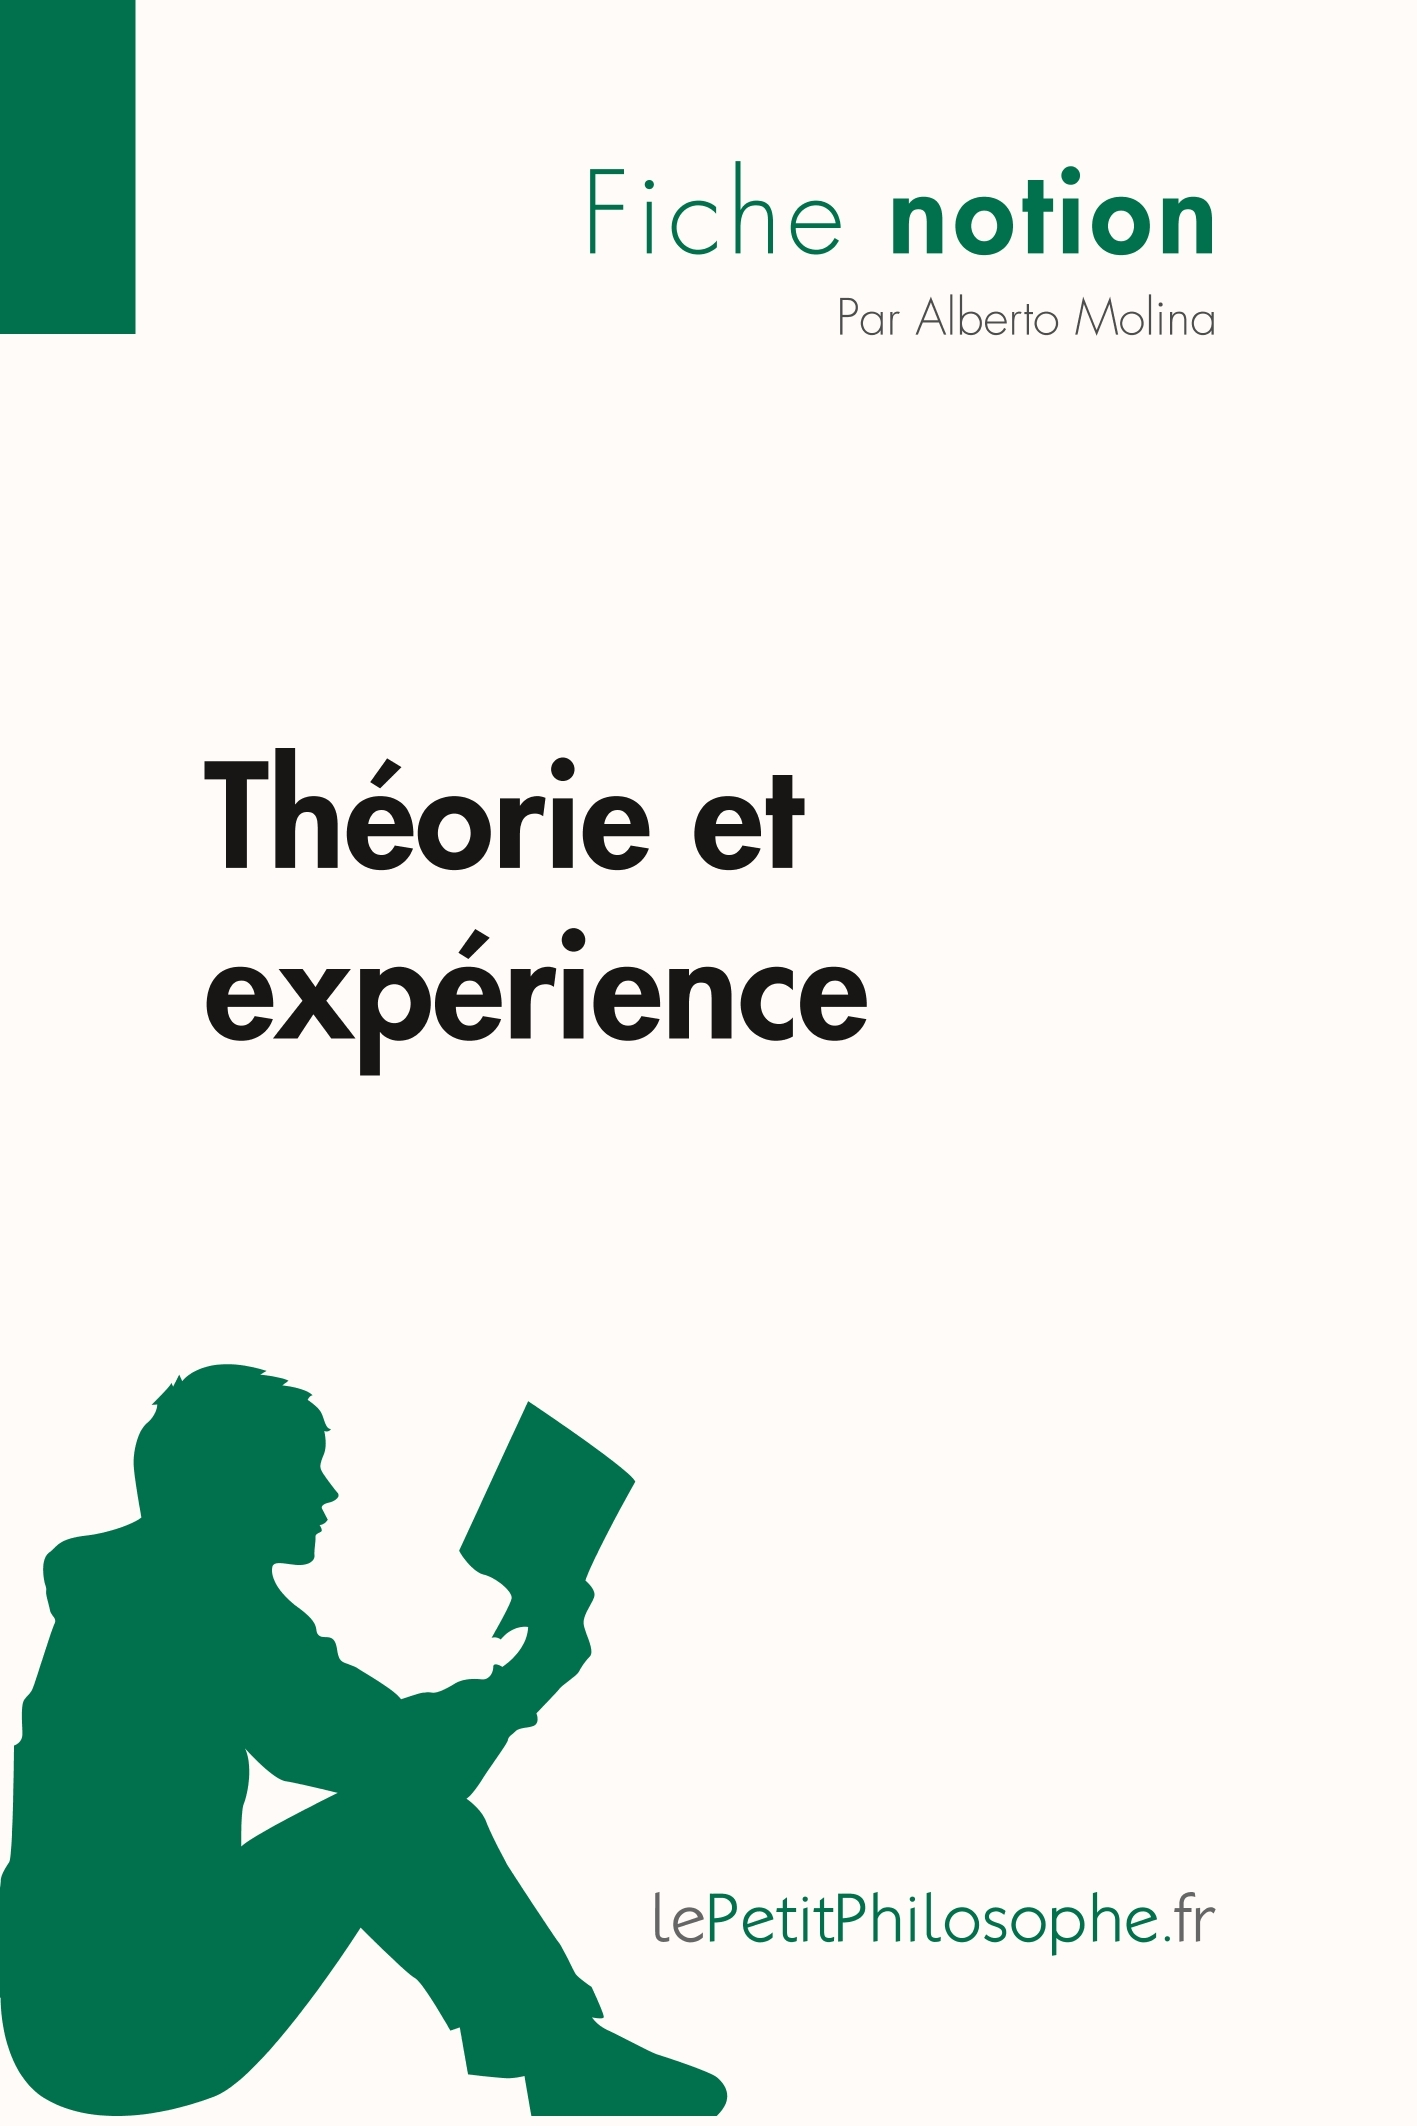 THEORIE ET EXPERIENCE (FICHE NOTION)